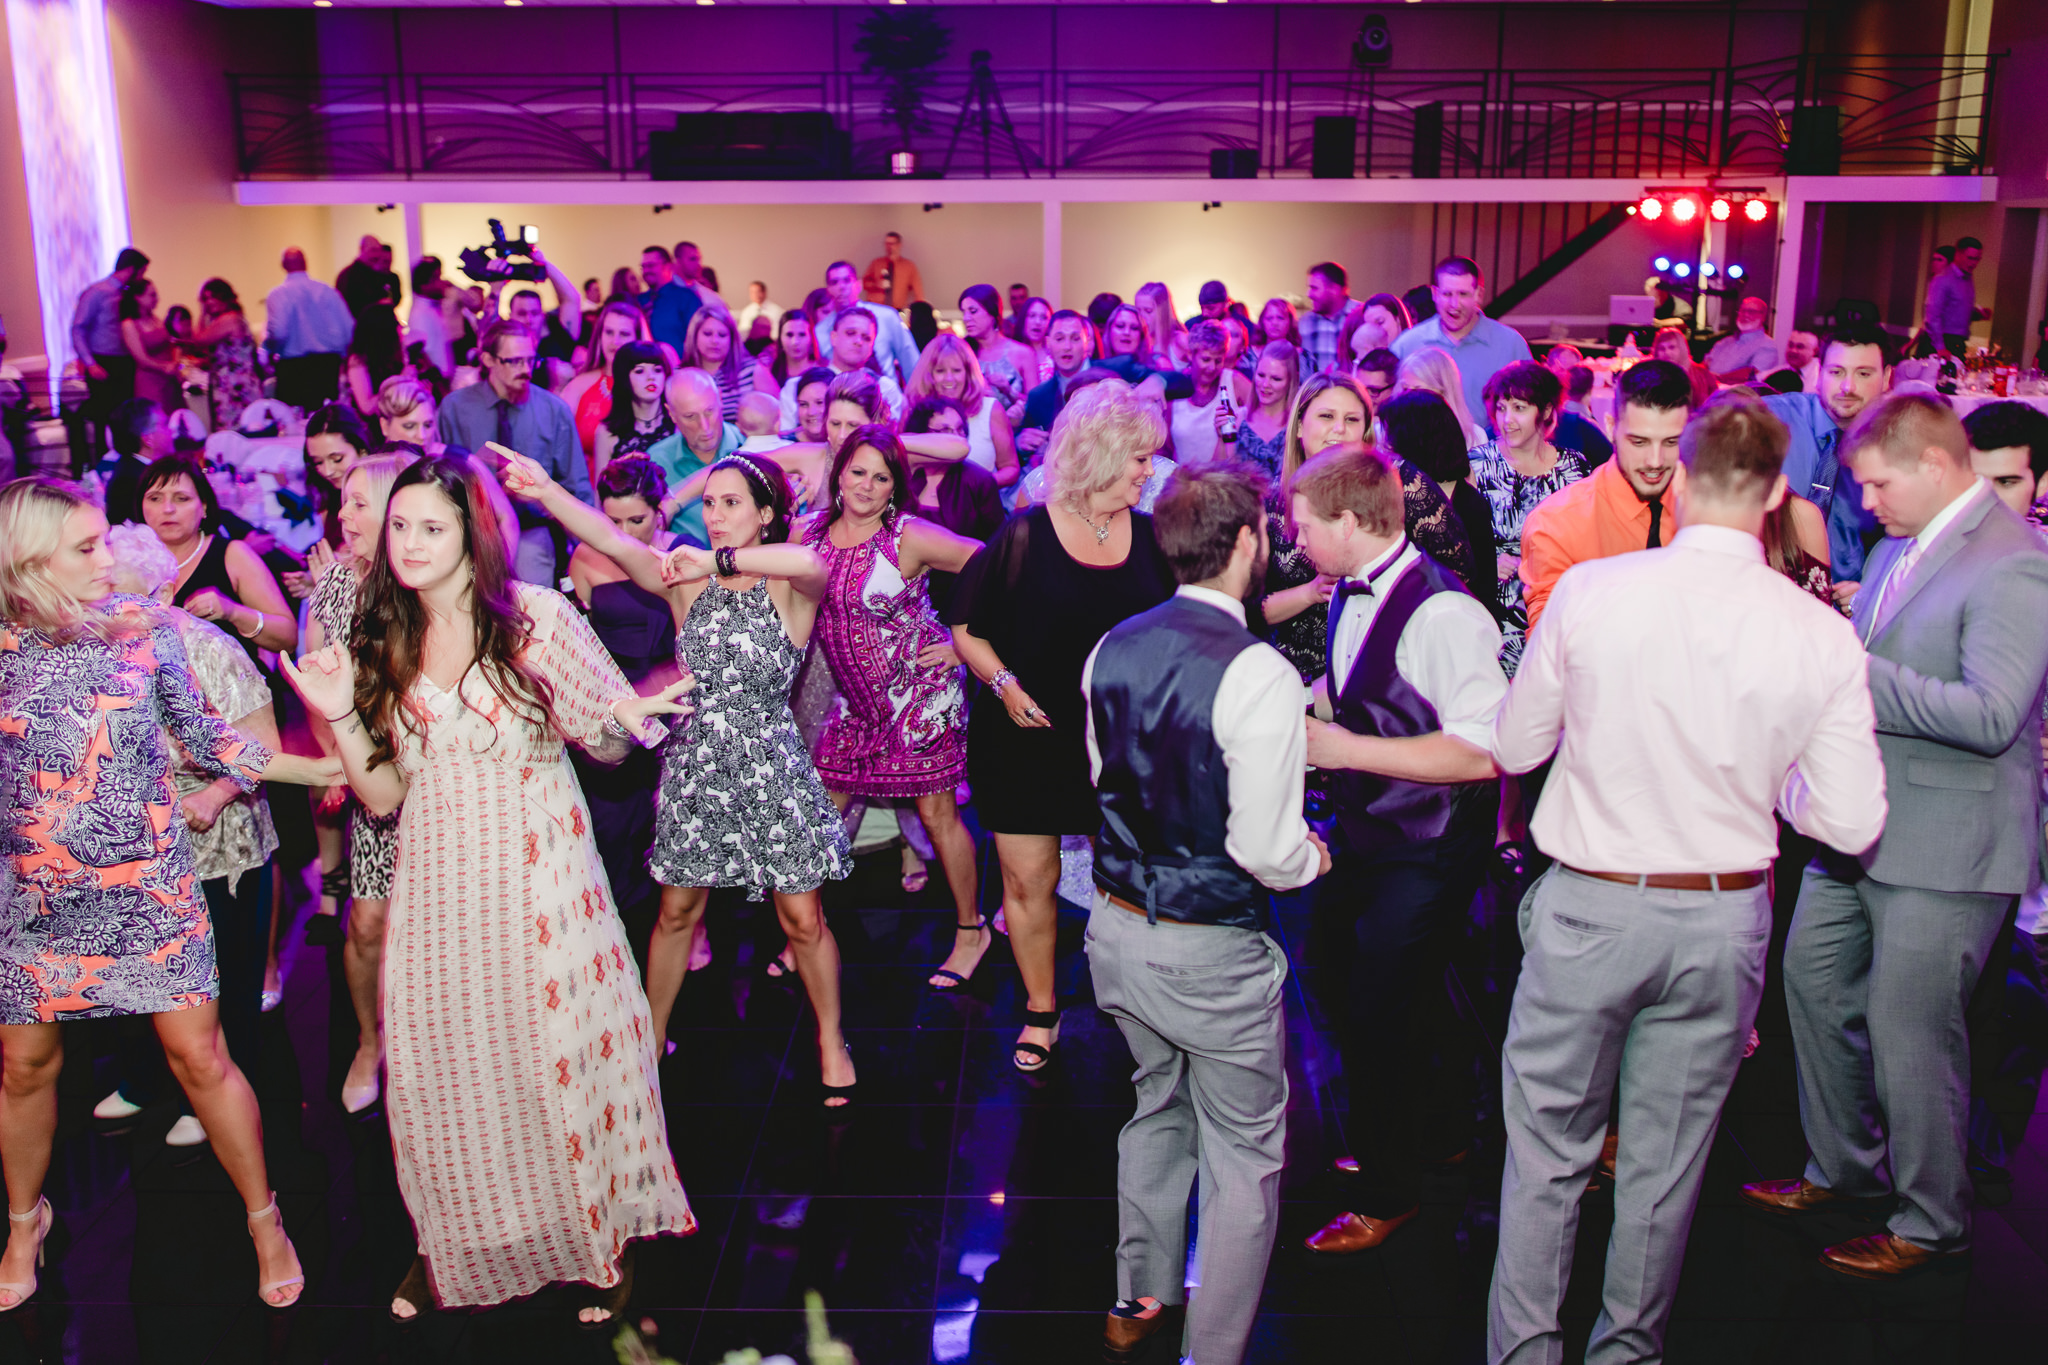 Wedding guests pack the dance floor to line dance at the Fez